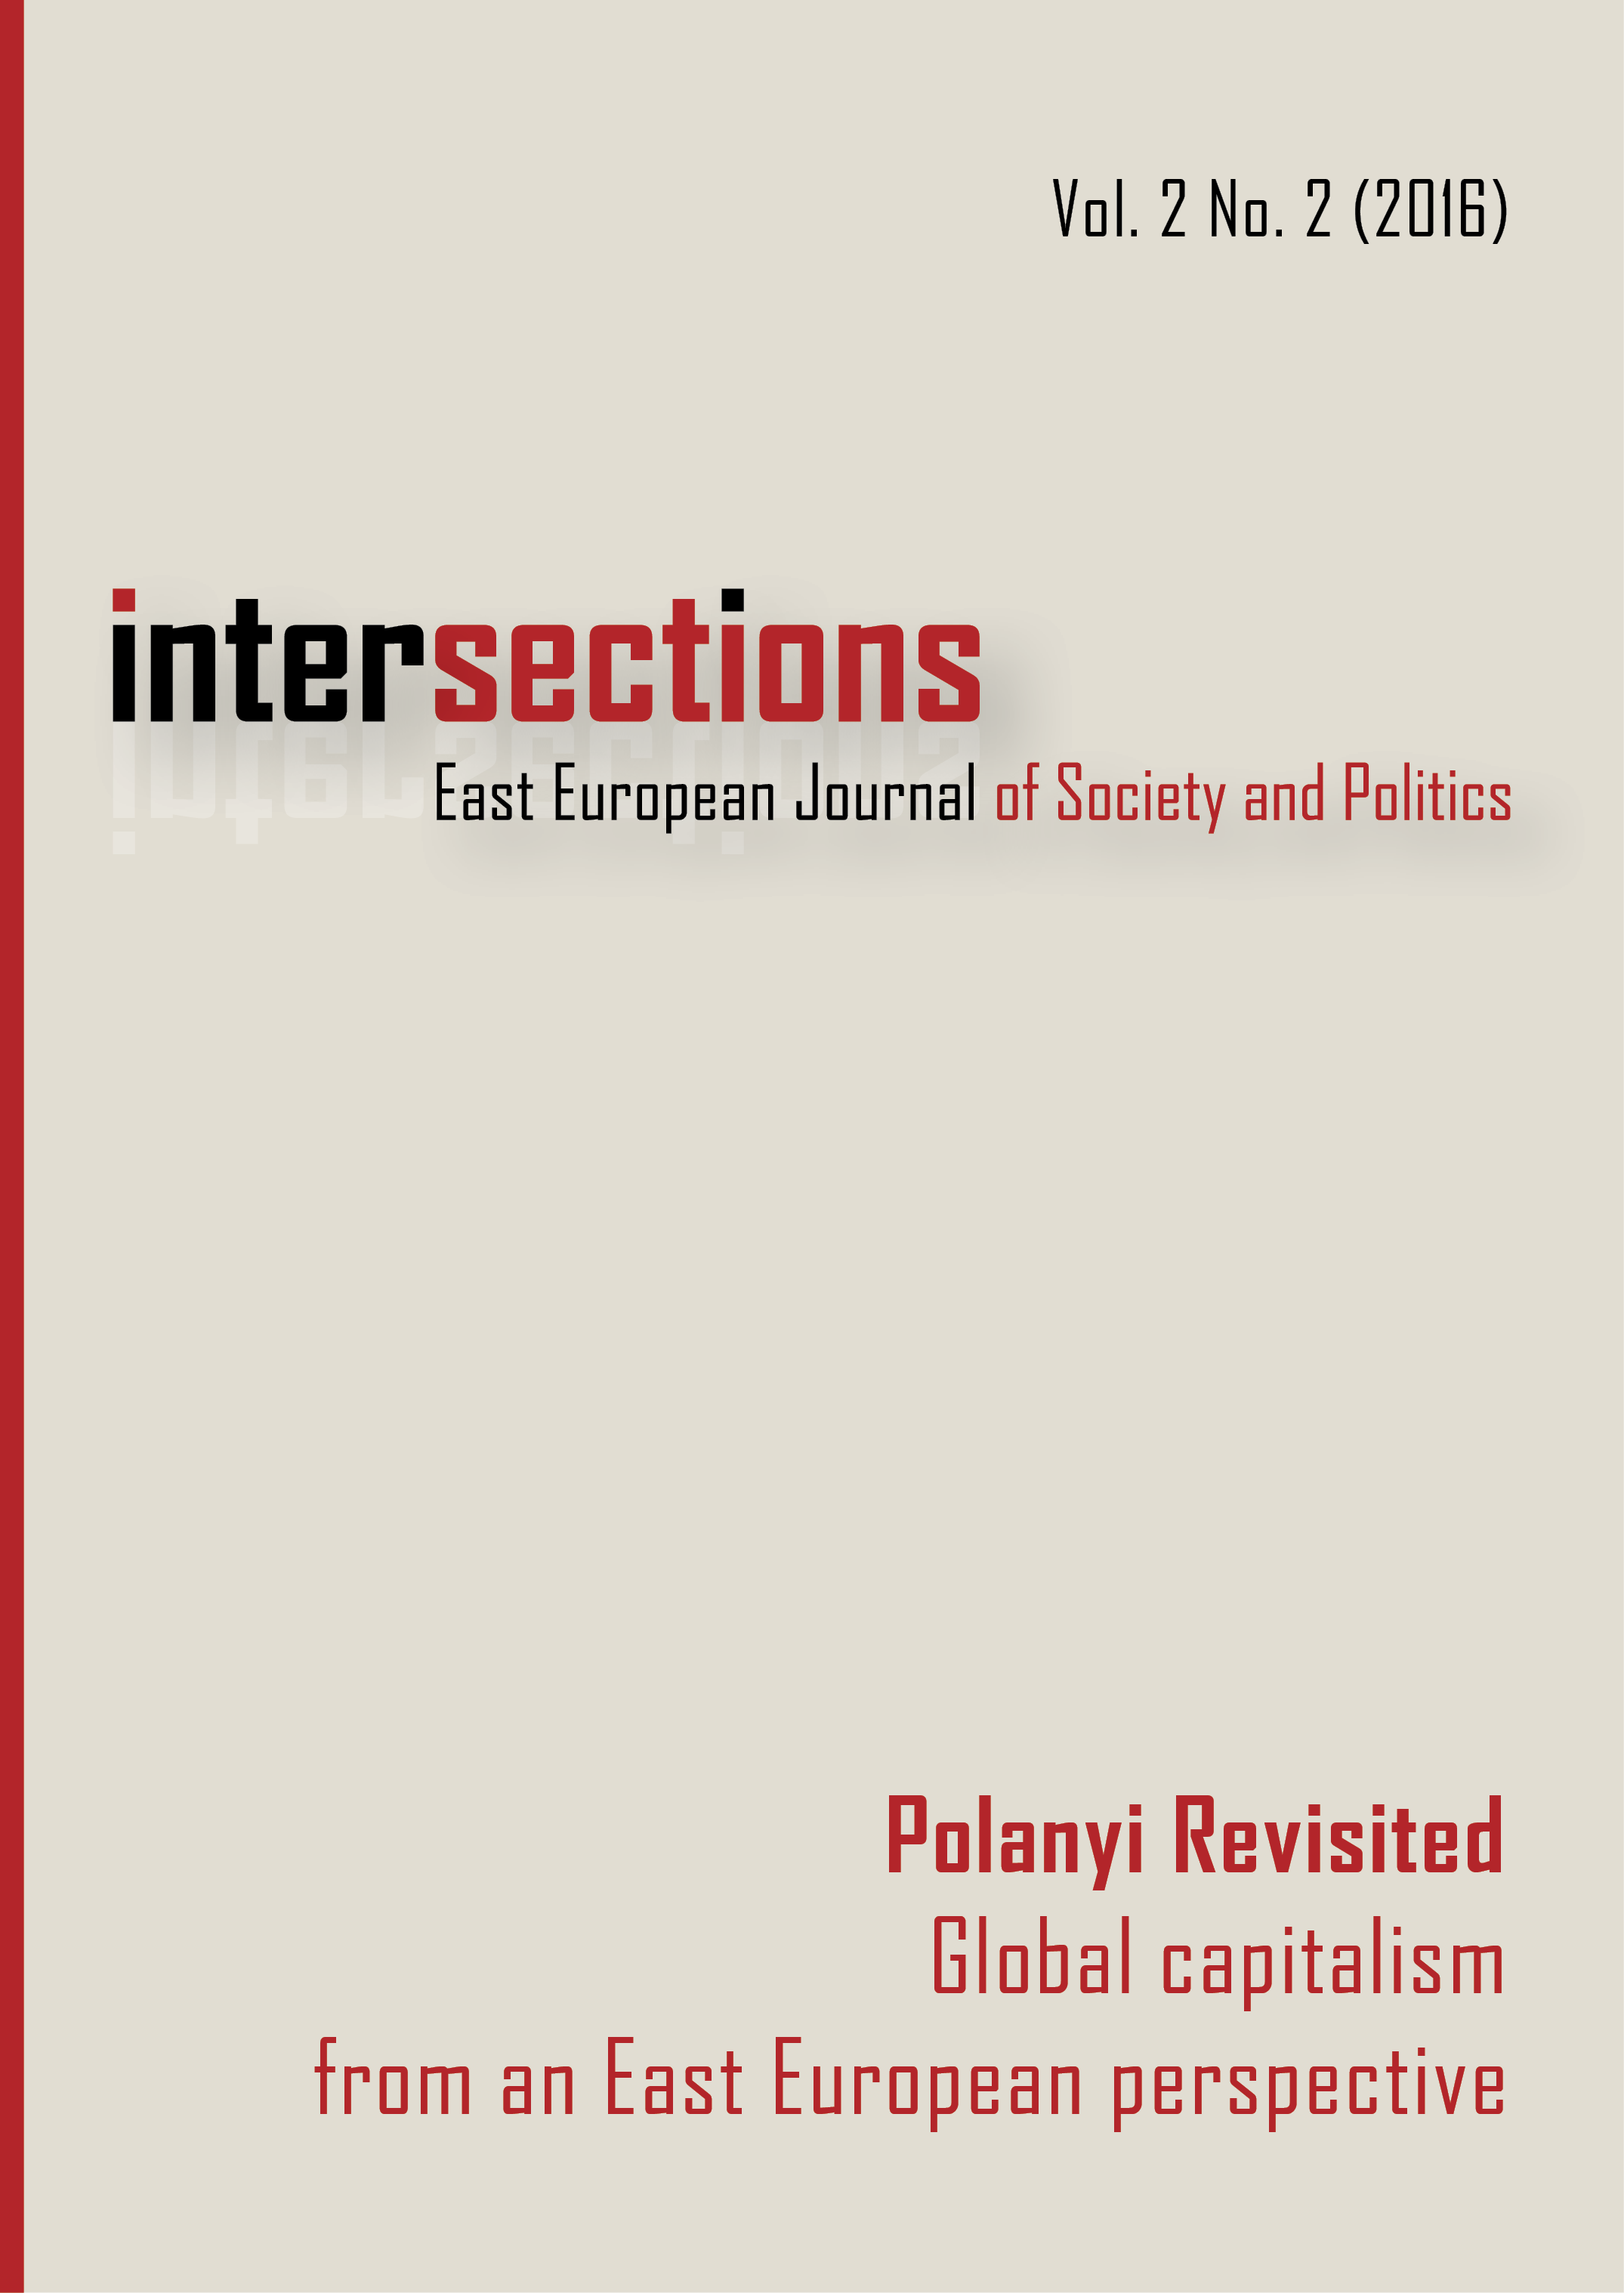 View Vol. 2 No. 2 (2016): Polanyi Revisited: Global Capitalism from an East European Perspective